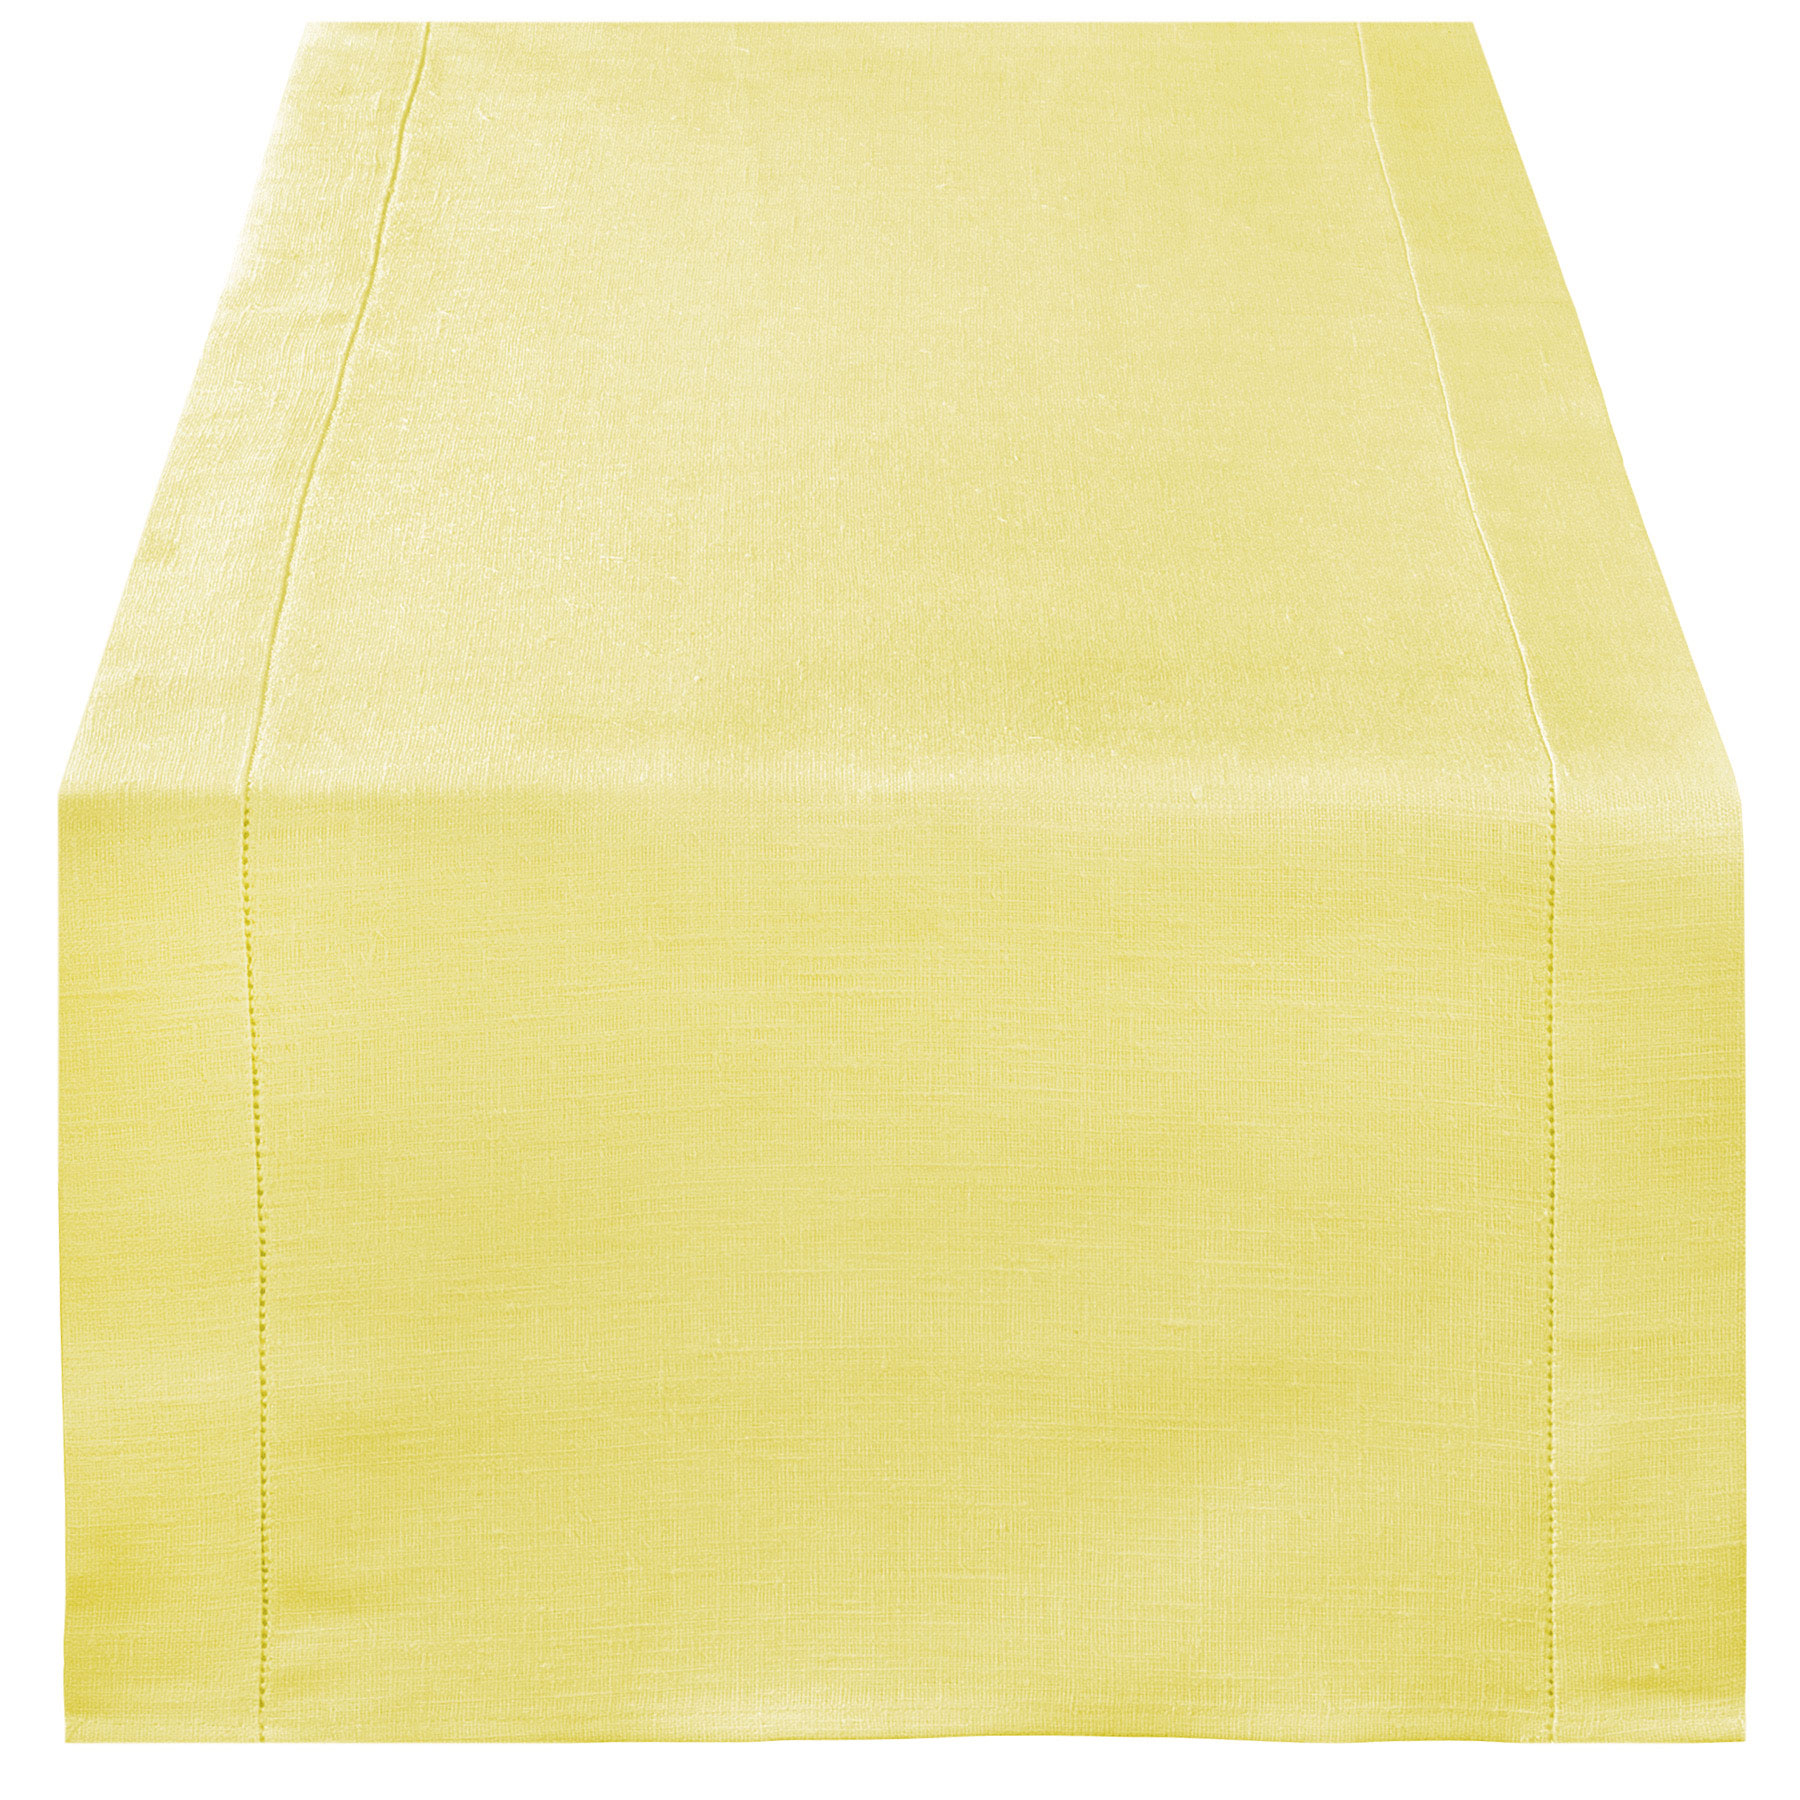 TABLE RUNNER <br />pastel yellow